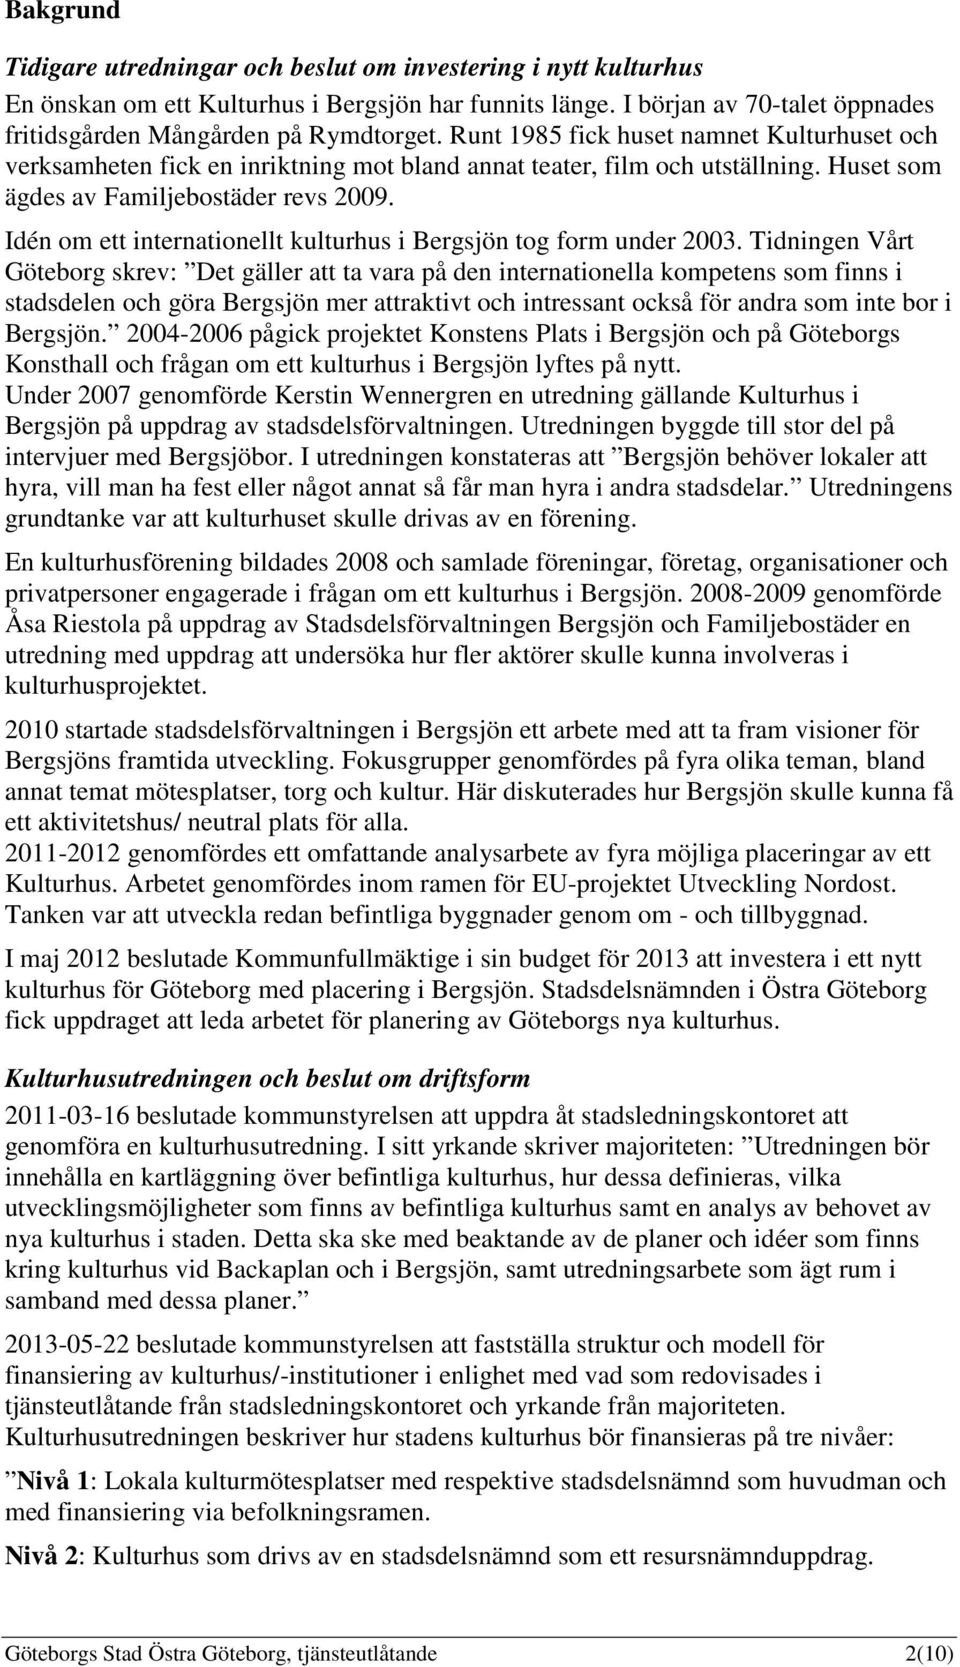 Idén om ett internationellt kulturhus i Bergsjön tog form under 2003.